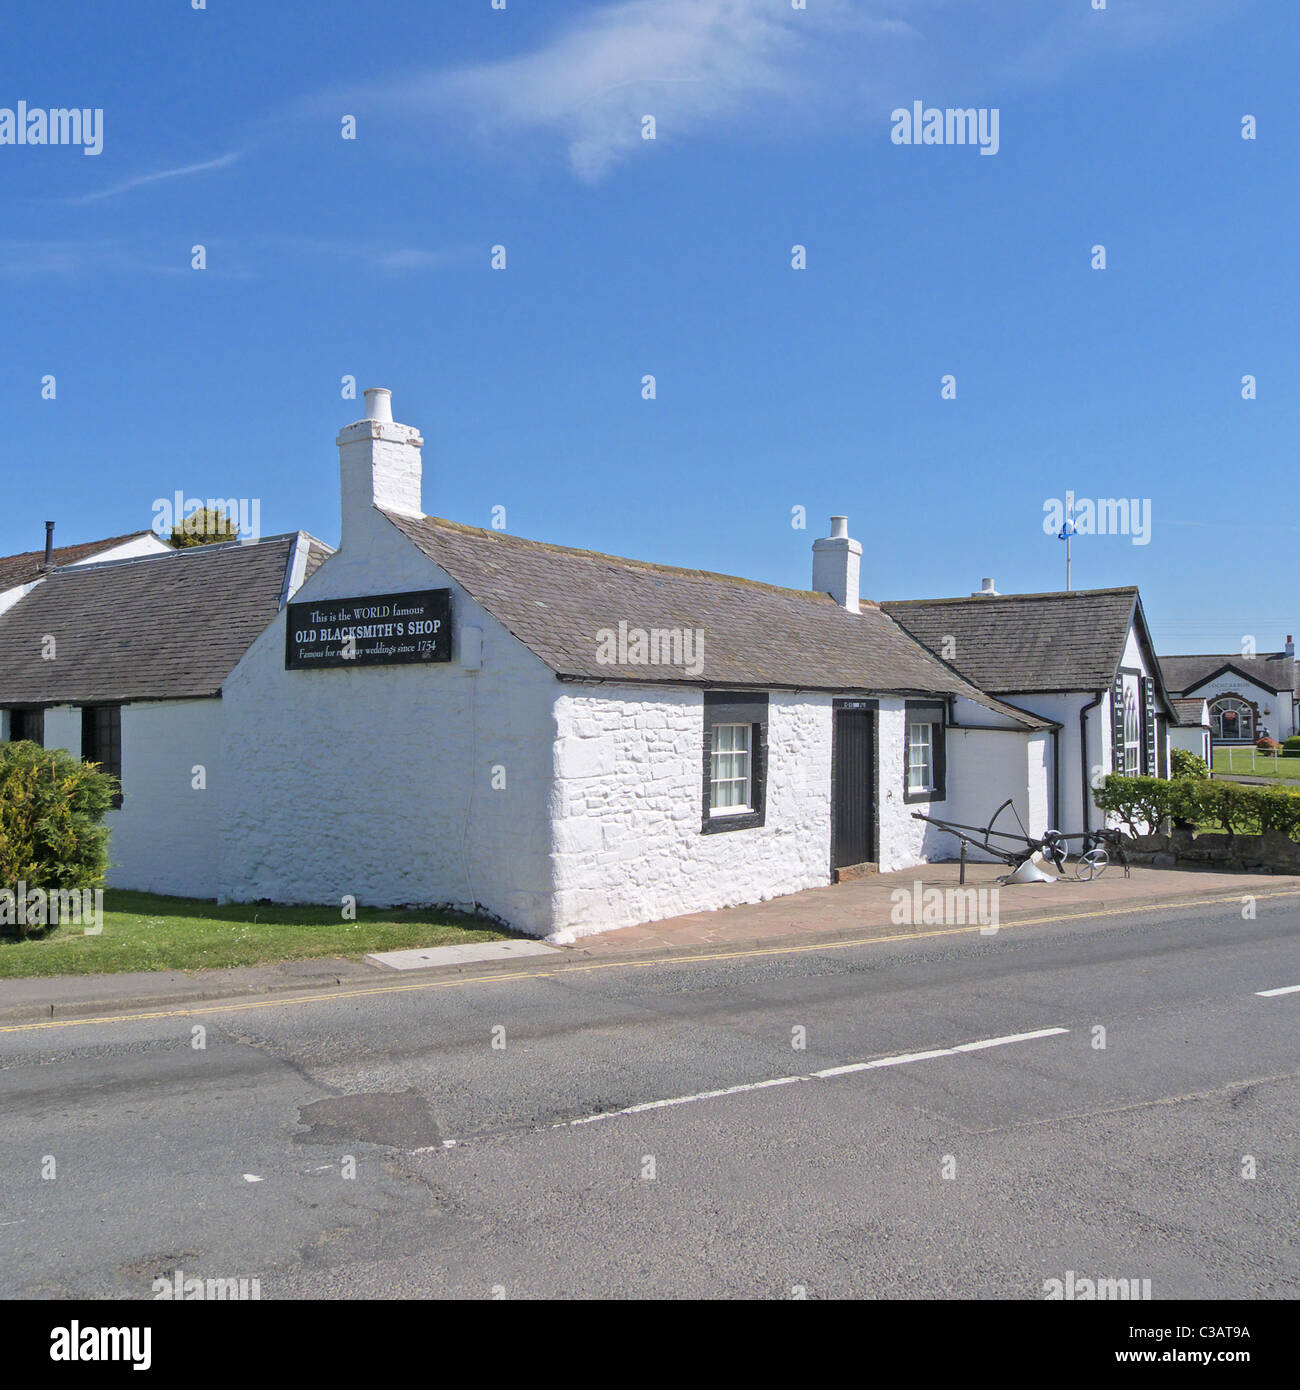 The Old Blacksmiths Shop at Gretna Green, Dumfries and Galloway, Scotland, UK - Stock Image